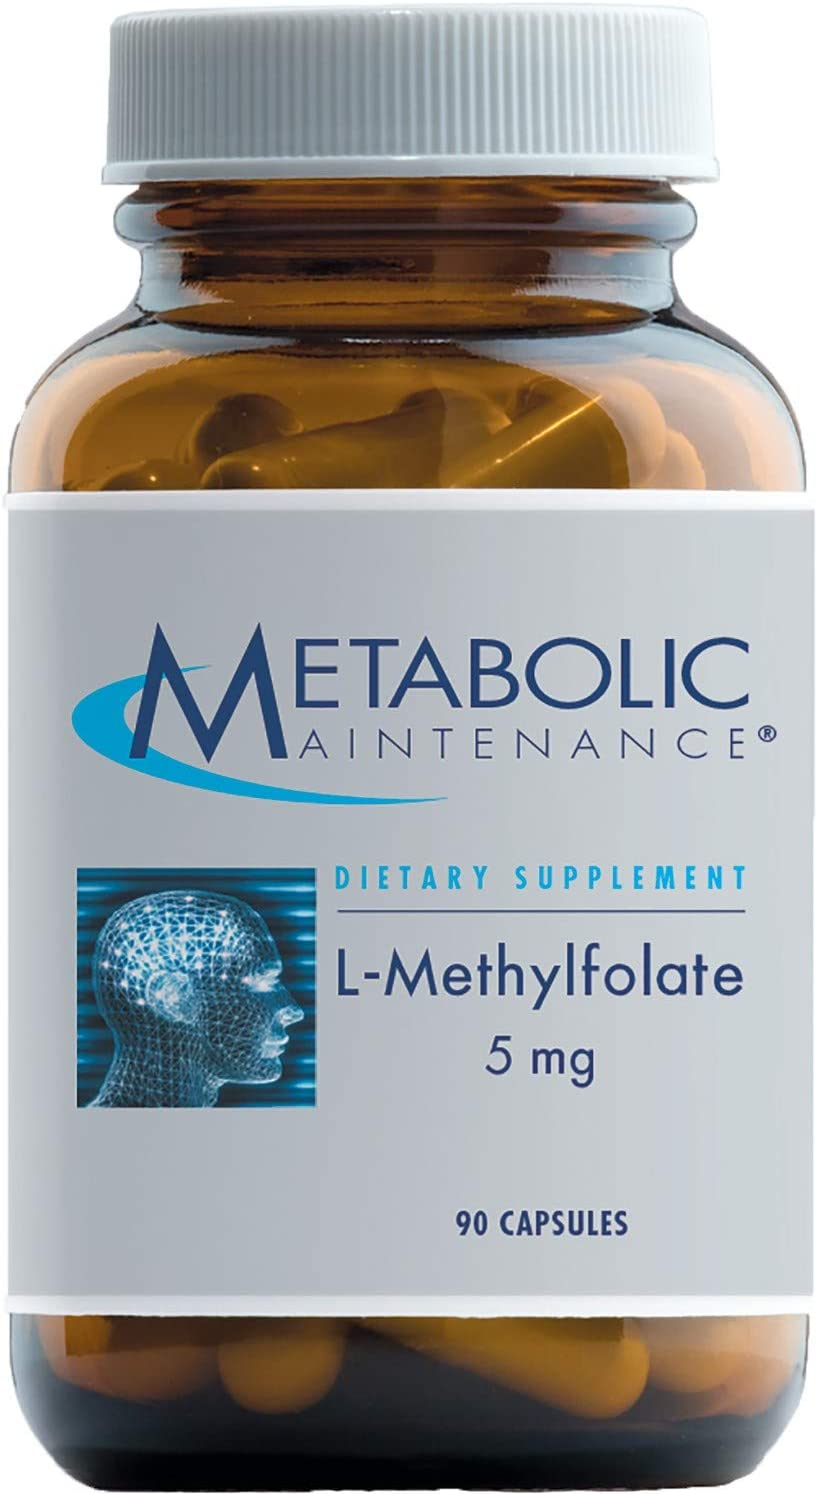 Metabolic Maintenance L-Methylfolate 5 Milligrams - Active Folate (L-5-MTHF) for Mood, Nerve + Cardiovascular Support (90 Capsules)